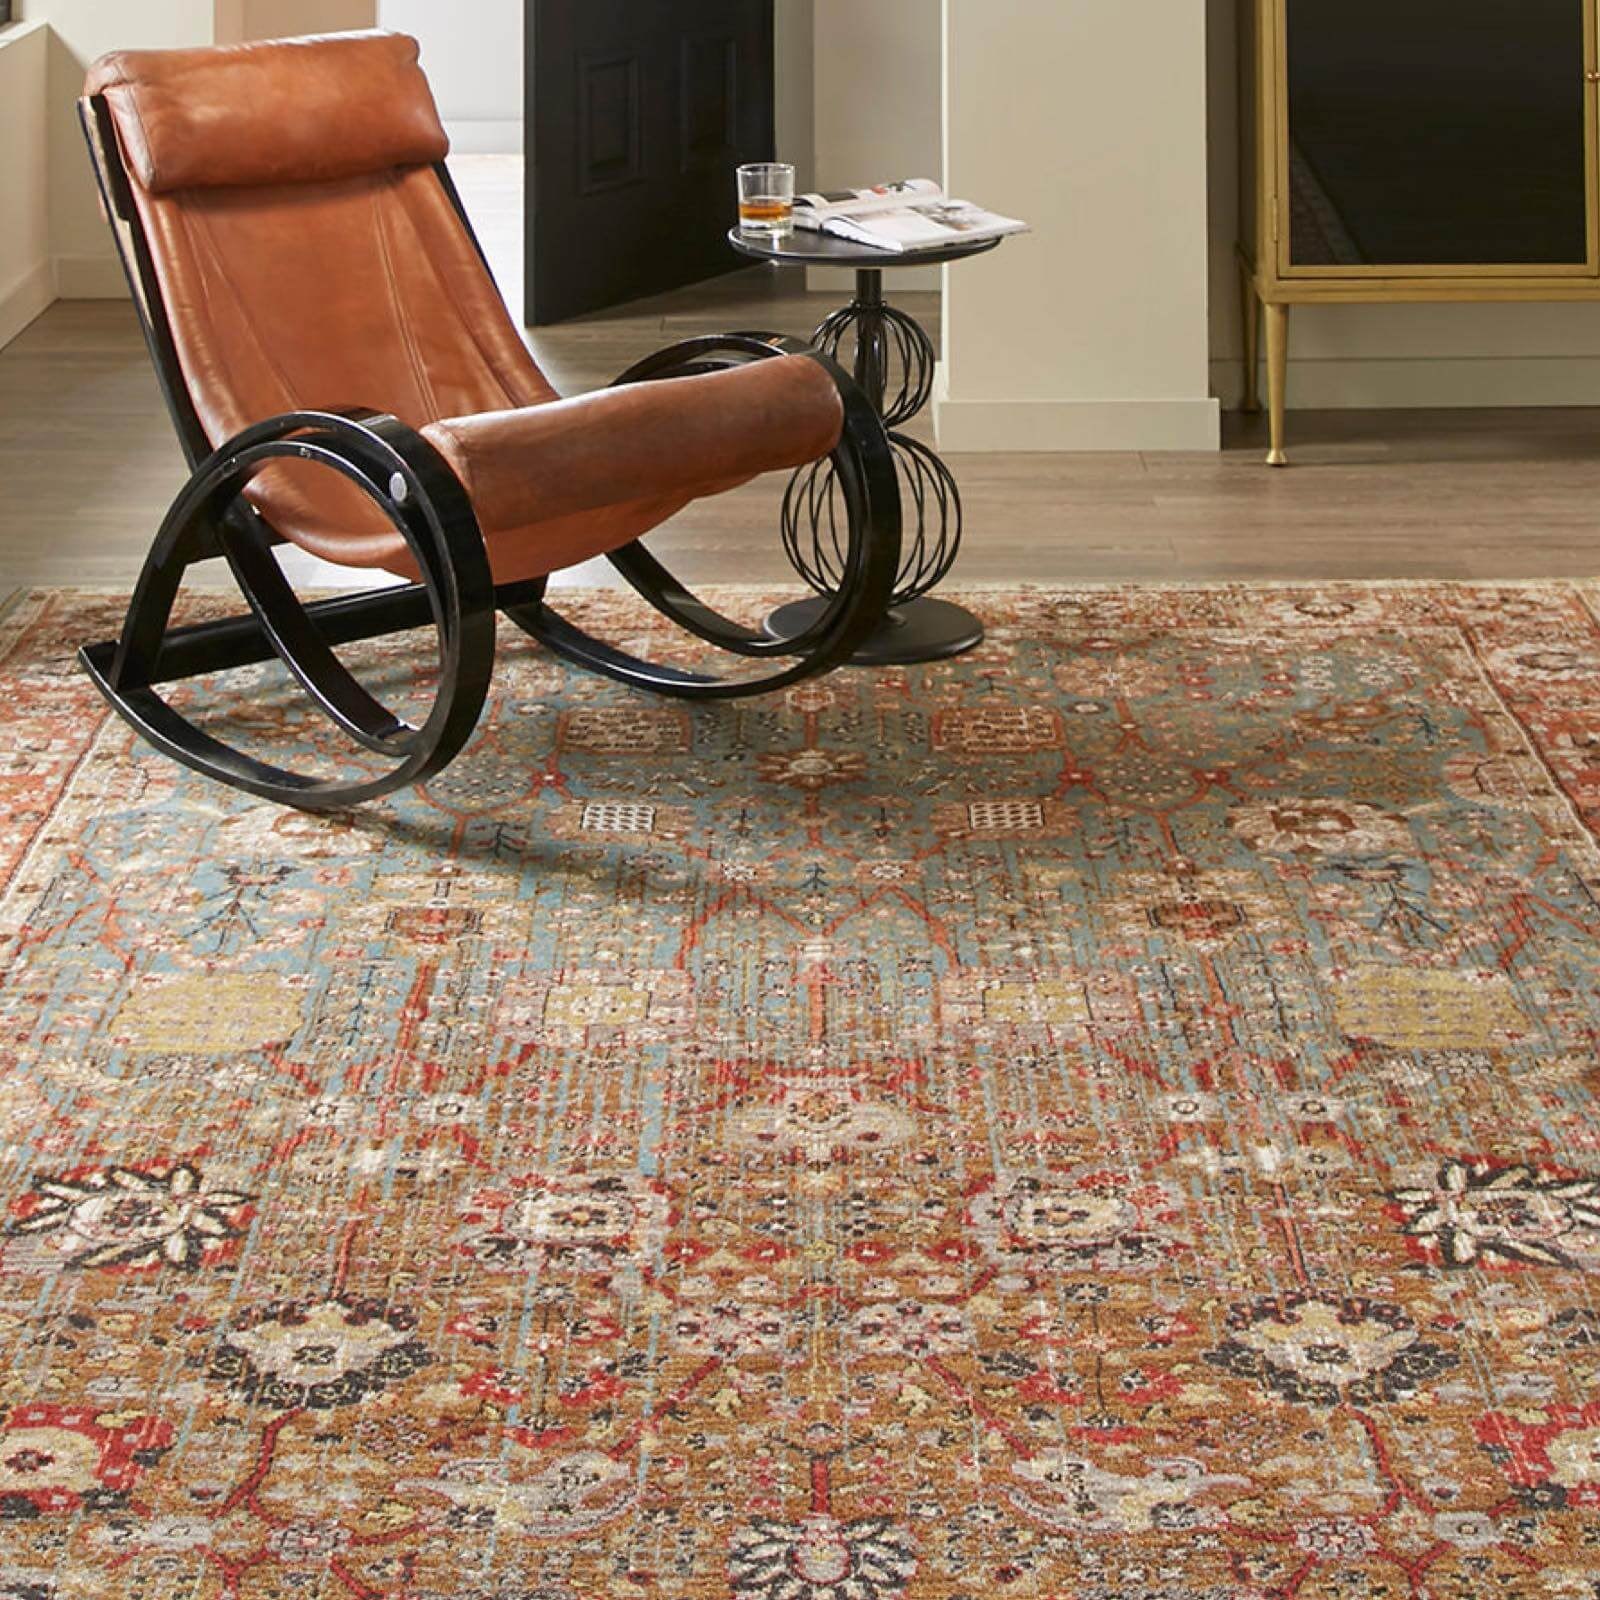 karastan_spicemarket_room | McSwain Carpet & Floors